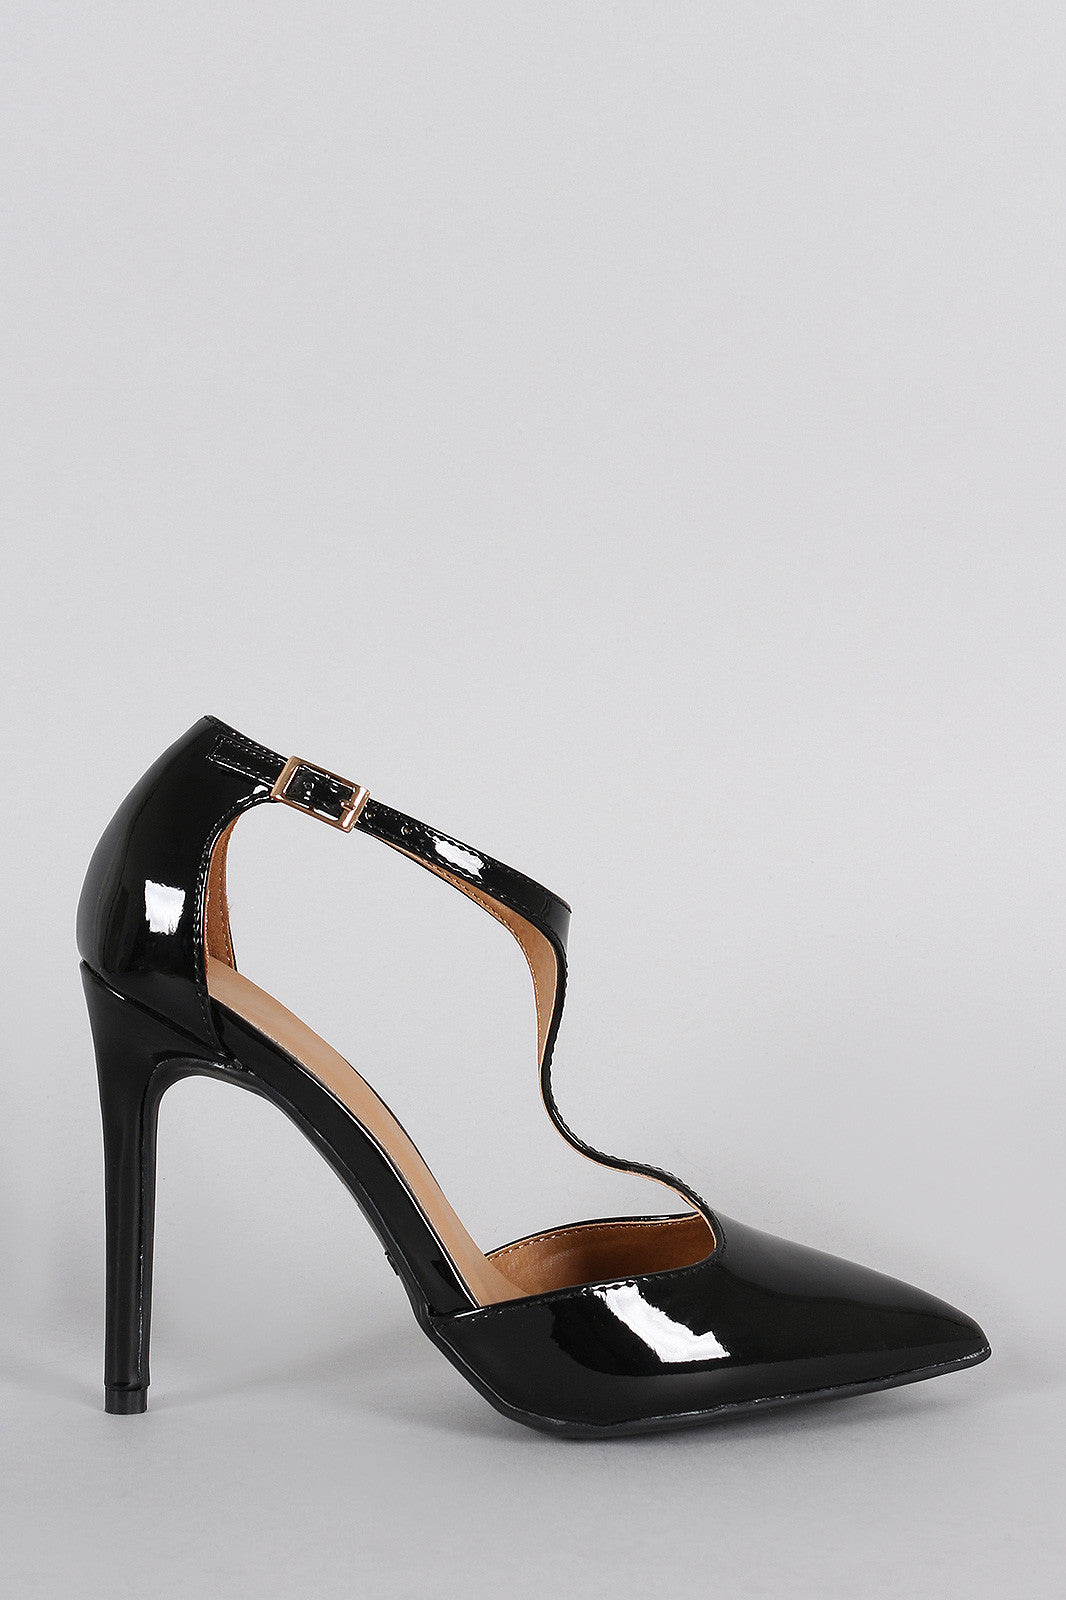 Patent Vegan Leather T-Strap Pointy Toe Pump - Thick 'N' Curvy Shop - 1